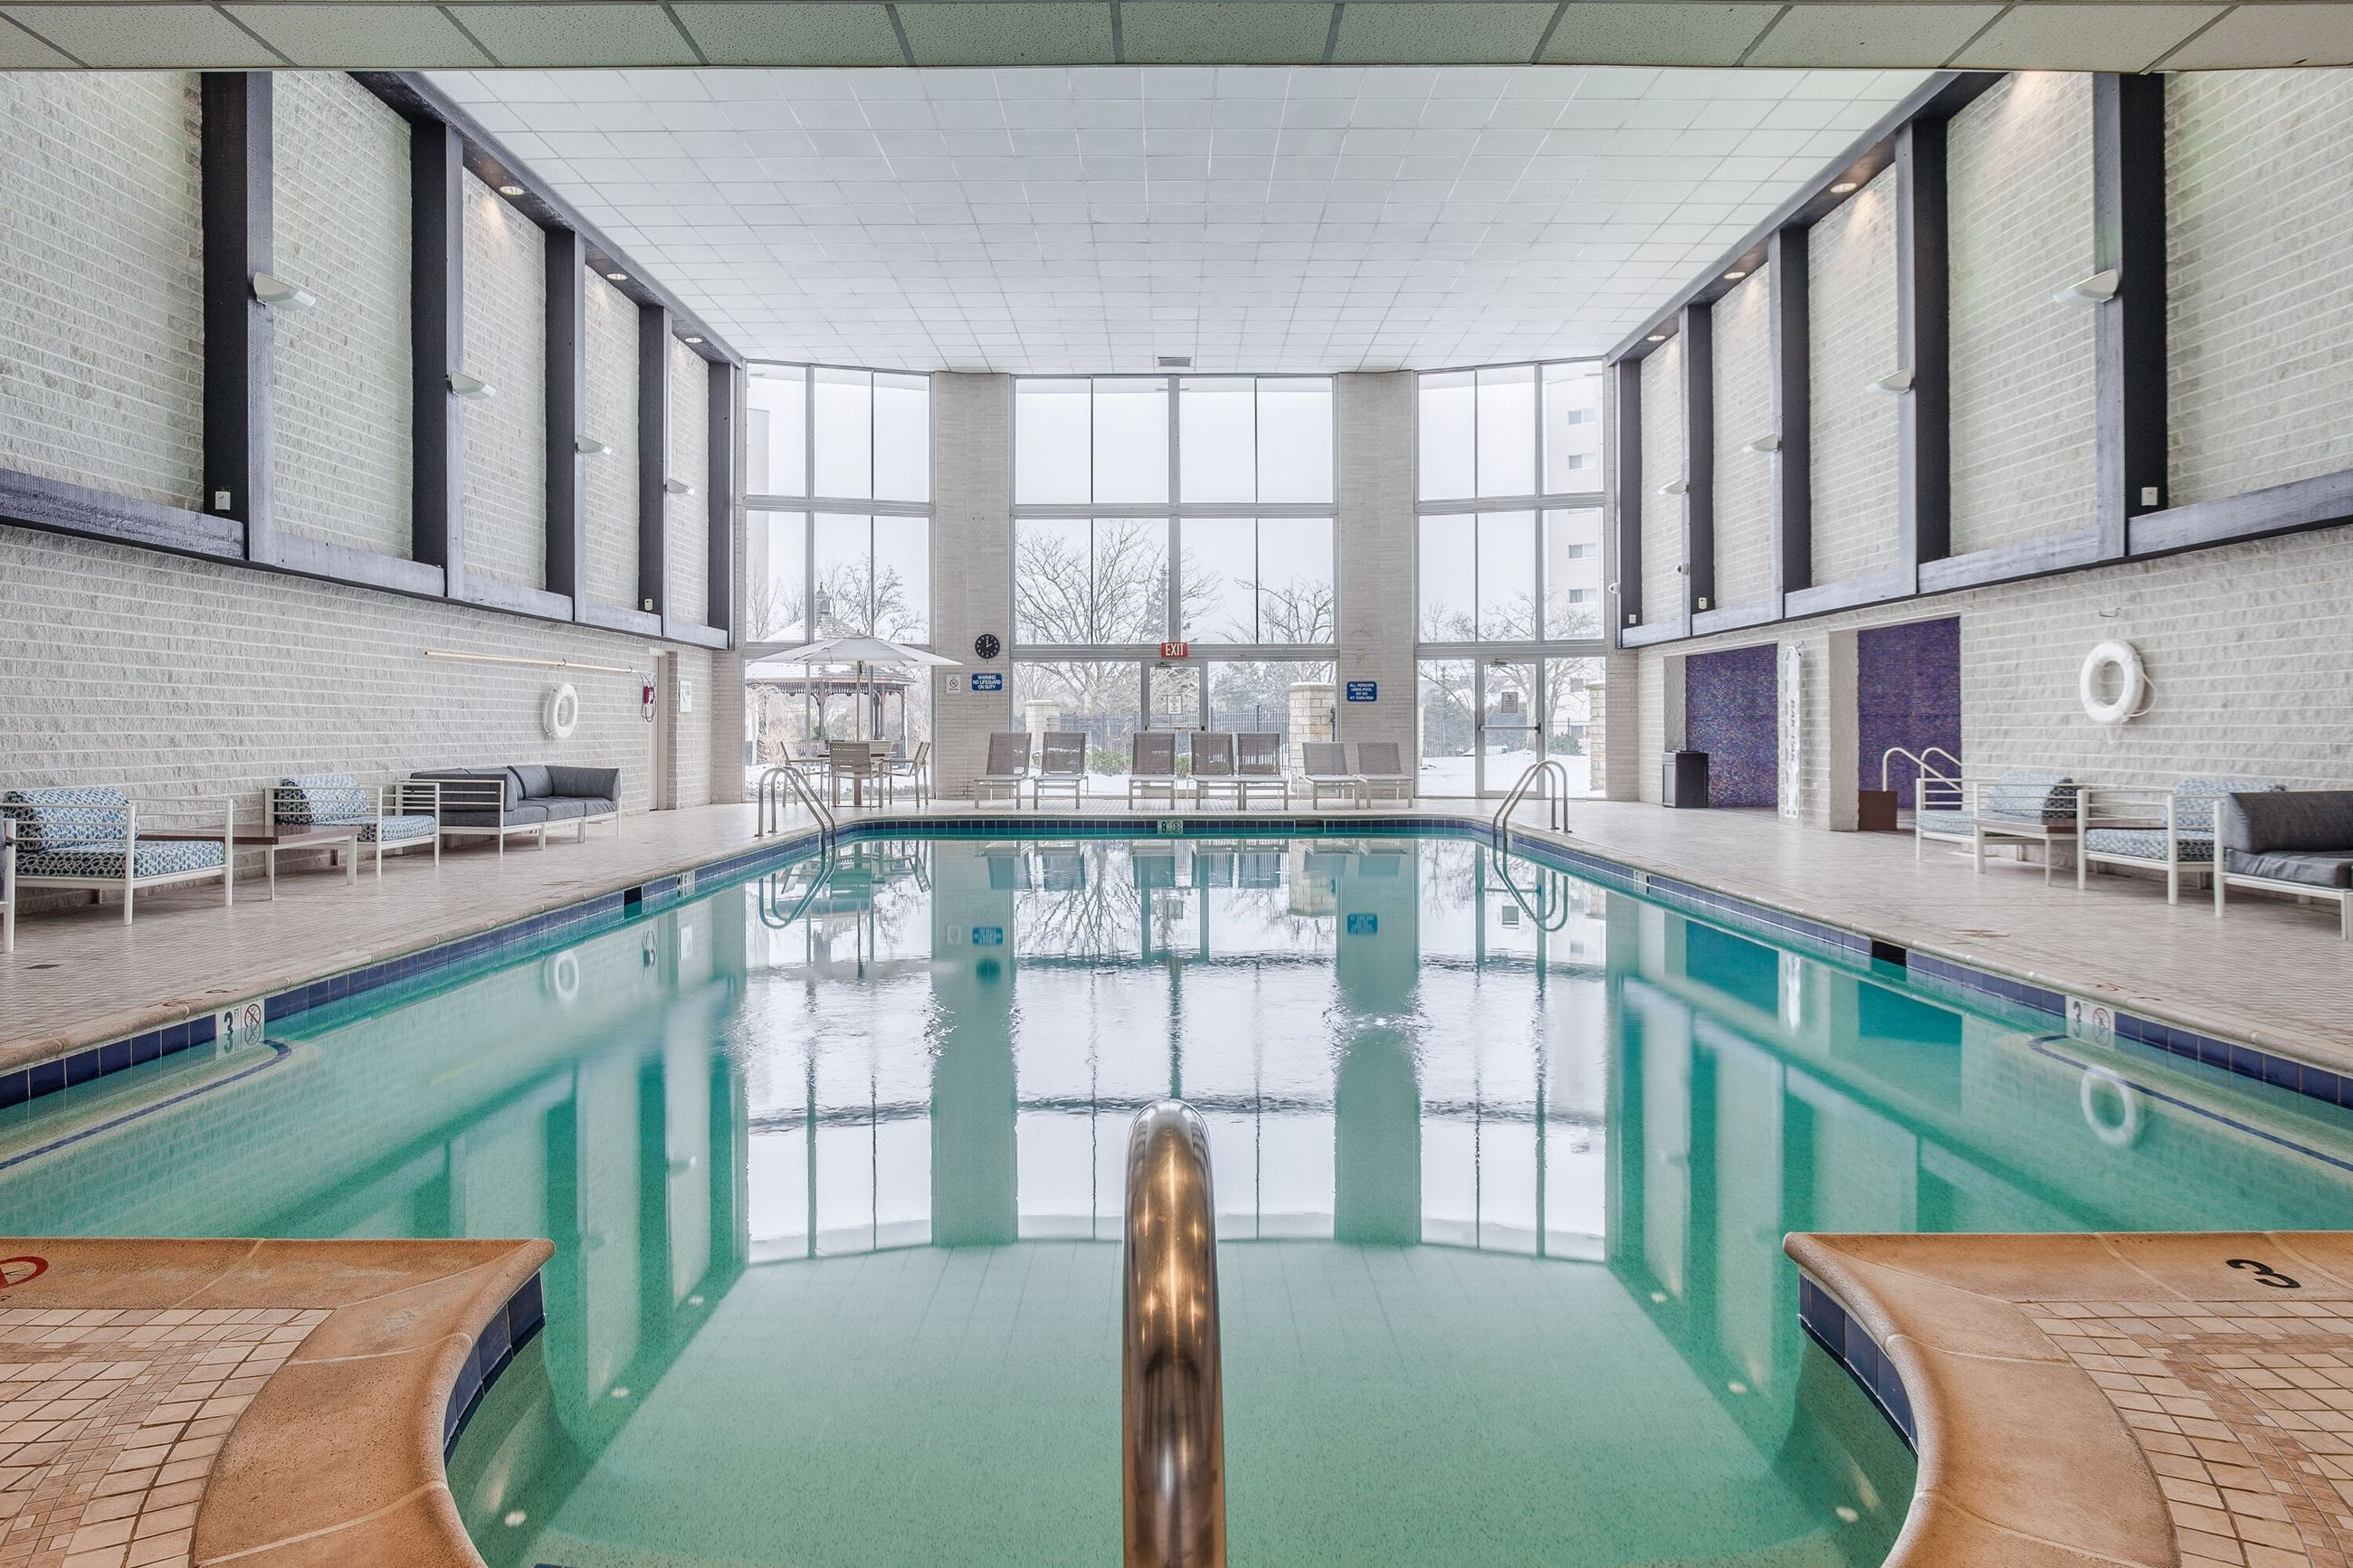 View of an indoor swimming pool and a wall of windows at the far end